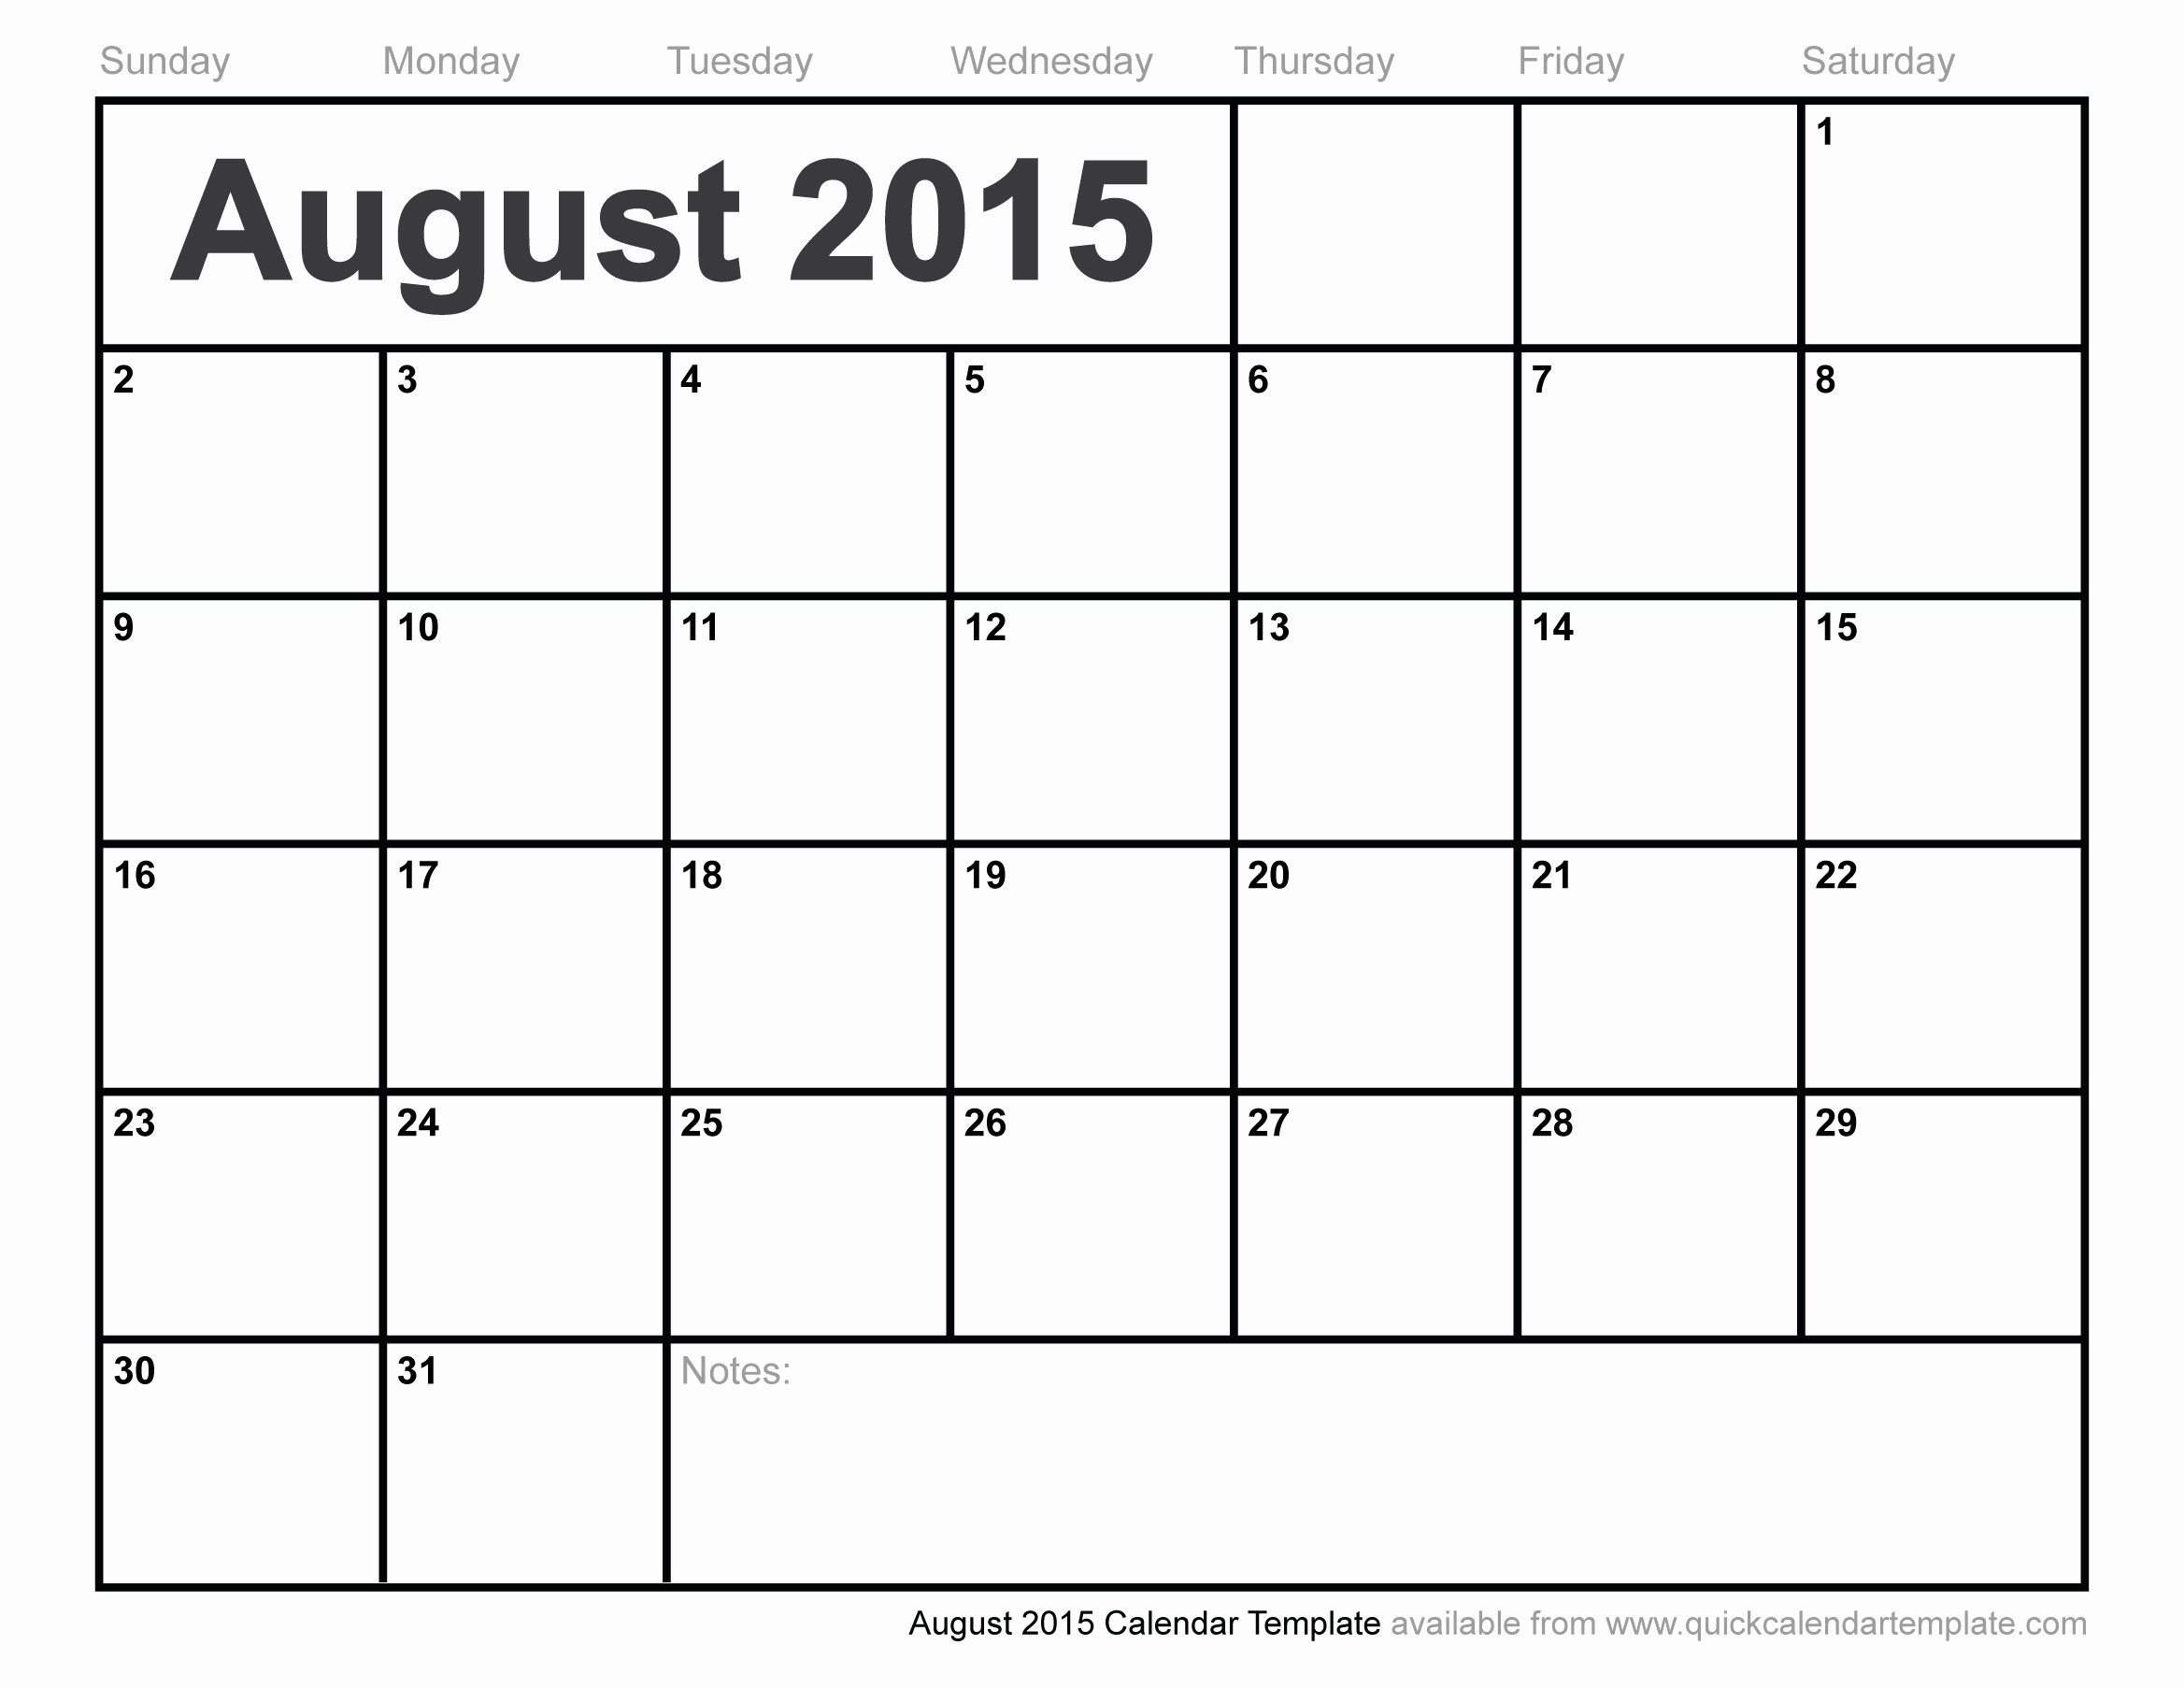 Free Calendar Templates August 2015 Awesome August 2015 Calendar Template September 2015 Calendar